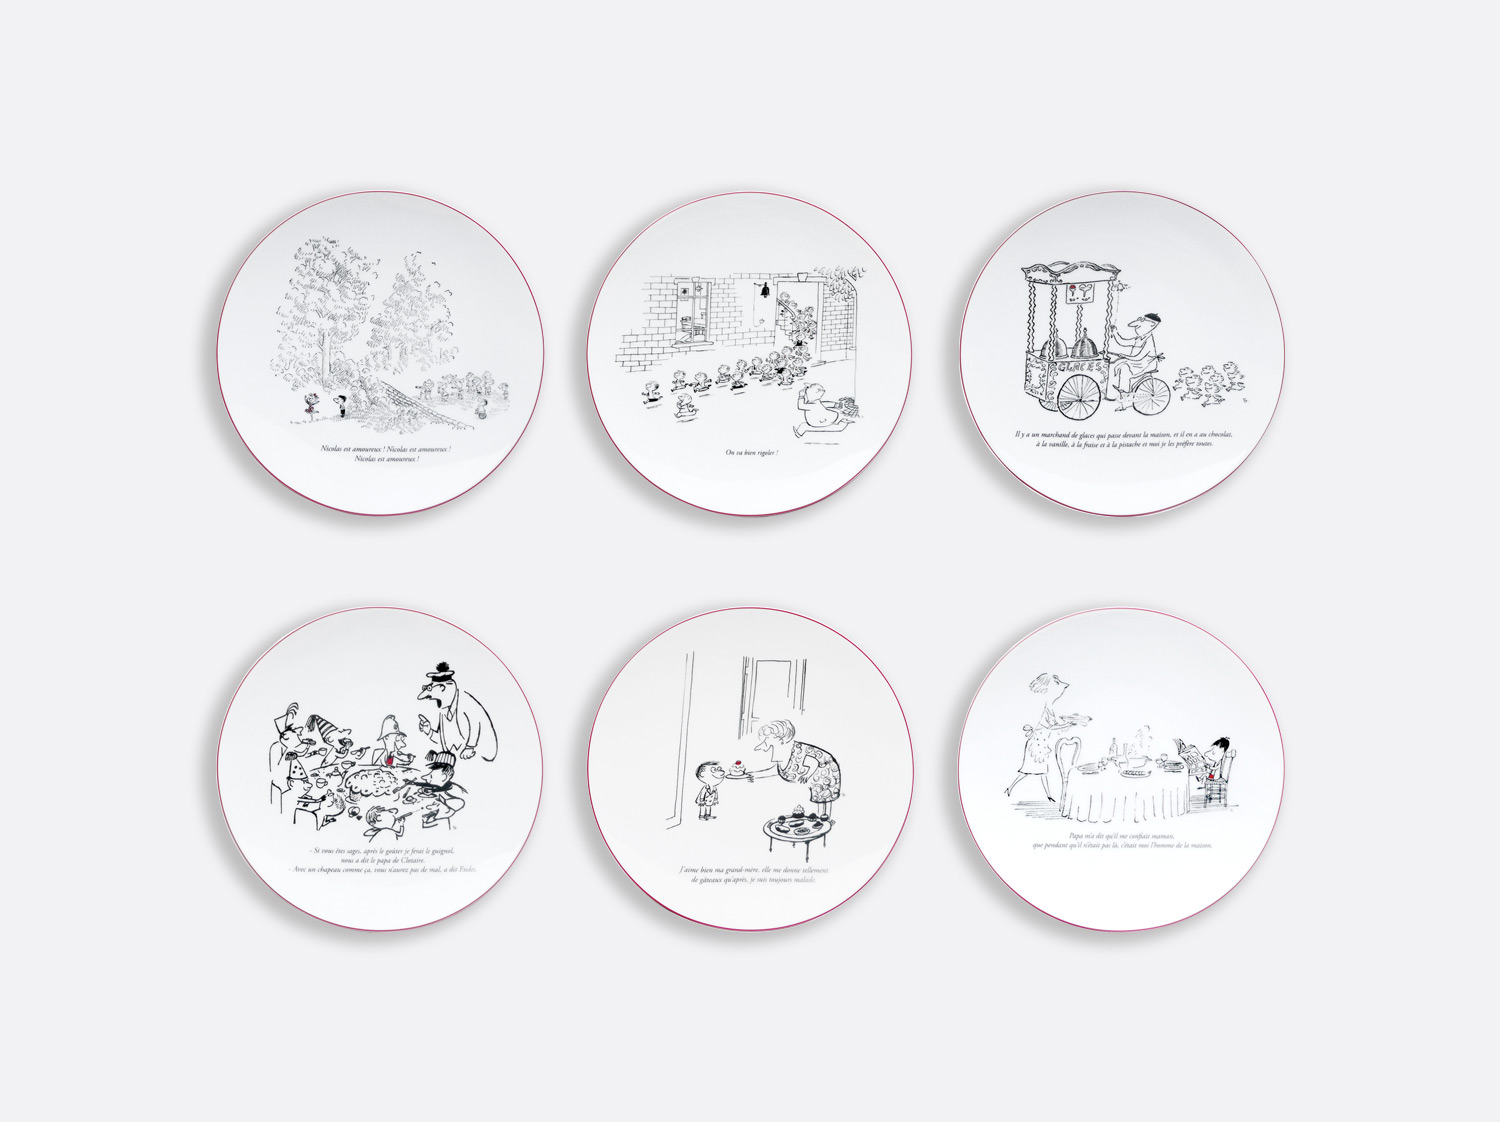 Coffret de 6 assiettes 21 cm coupe en porcelaine de la collection Le petit nicolas Bernardaud